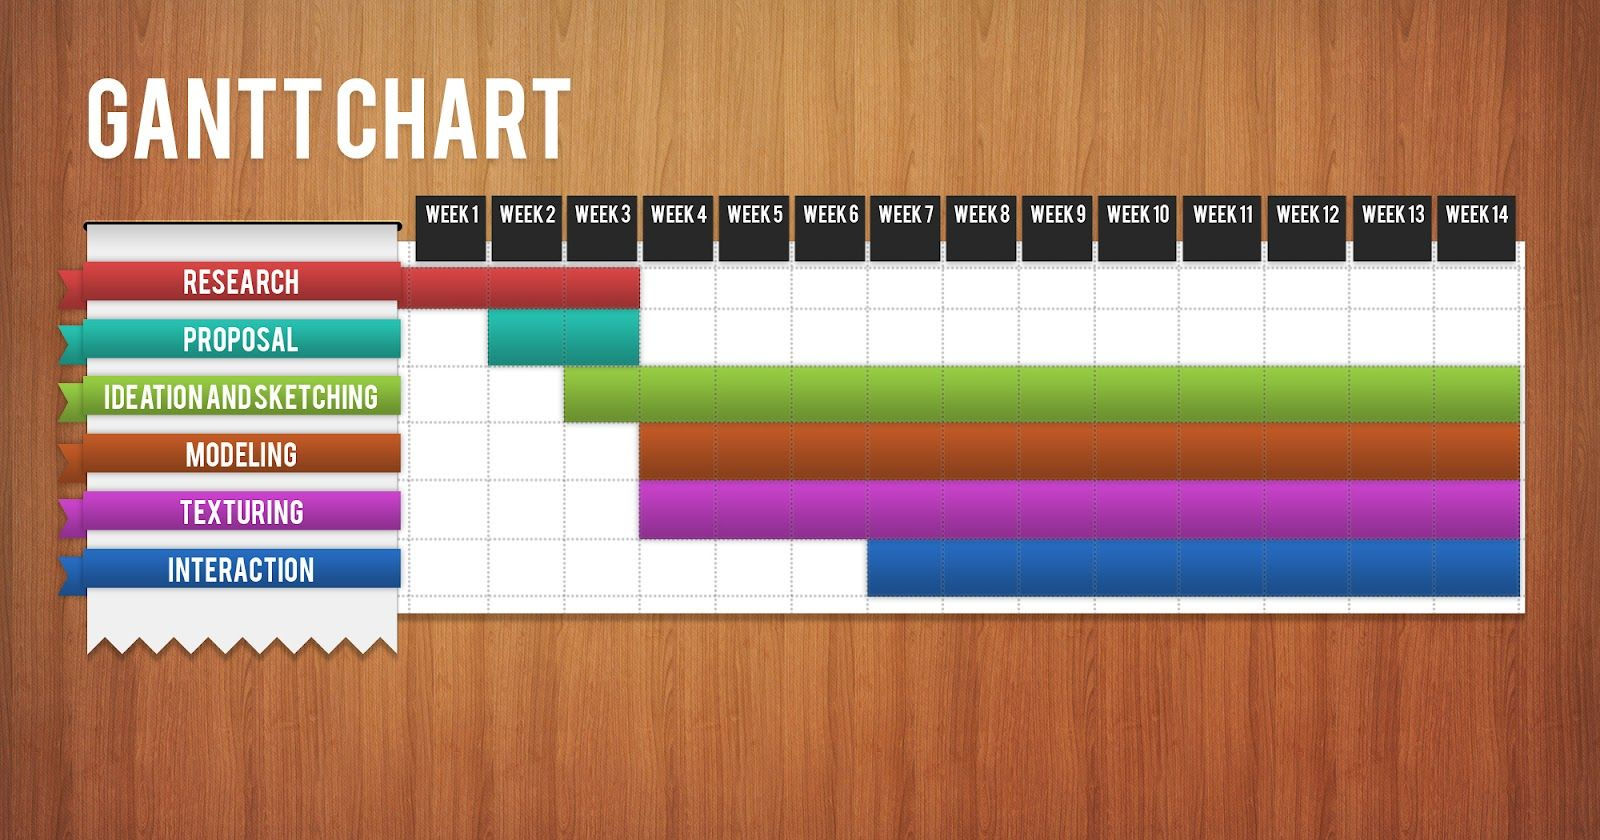 Gantt chart template 7 printable charts for excel ppt word gantt chart template 7 printable charts for excel ppt word chart and template geenschuldenfo Gallery